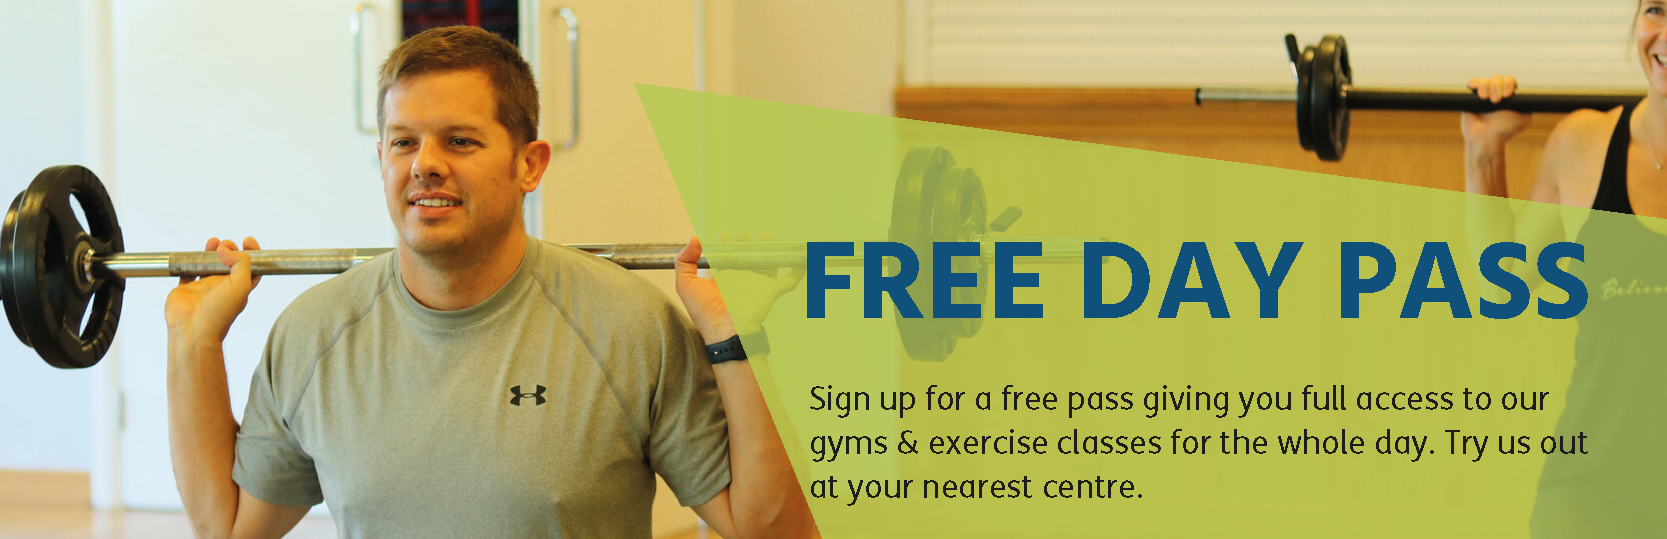 free day pass 2 1 - Gym & exercise classes at YMCA Walthamstow